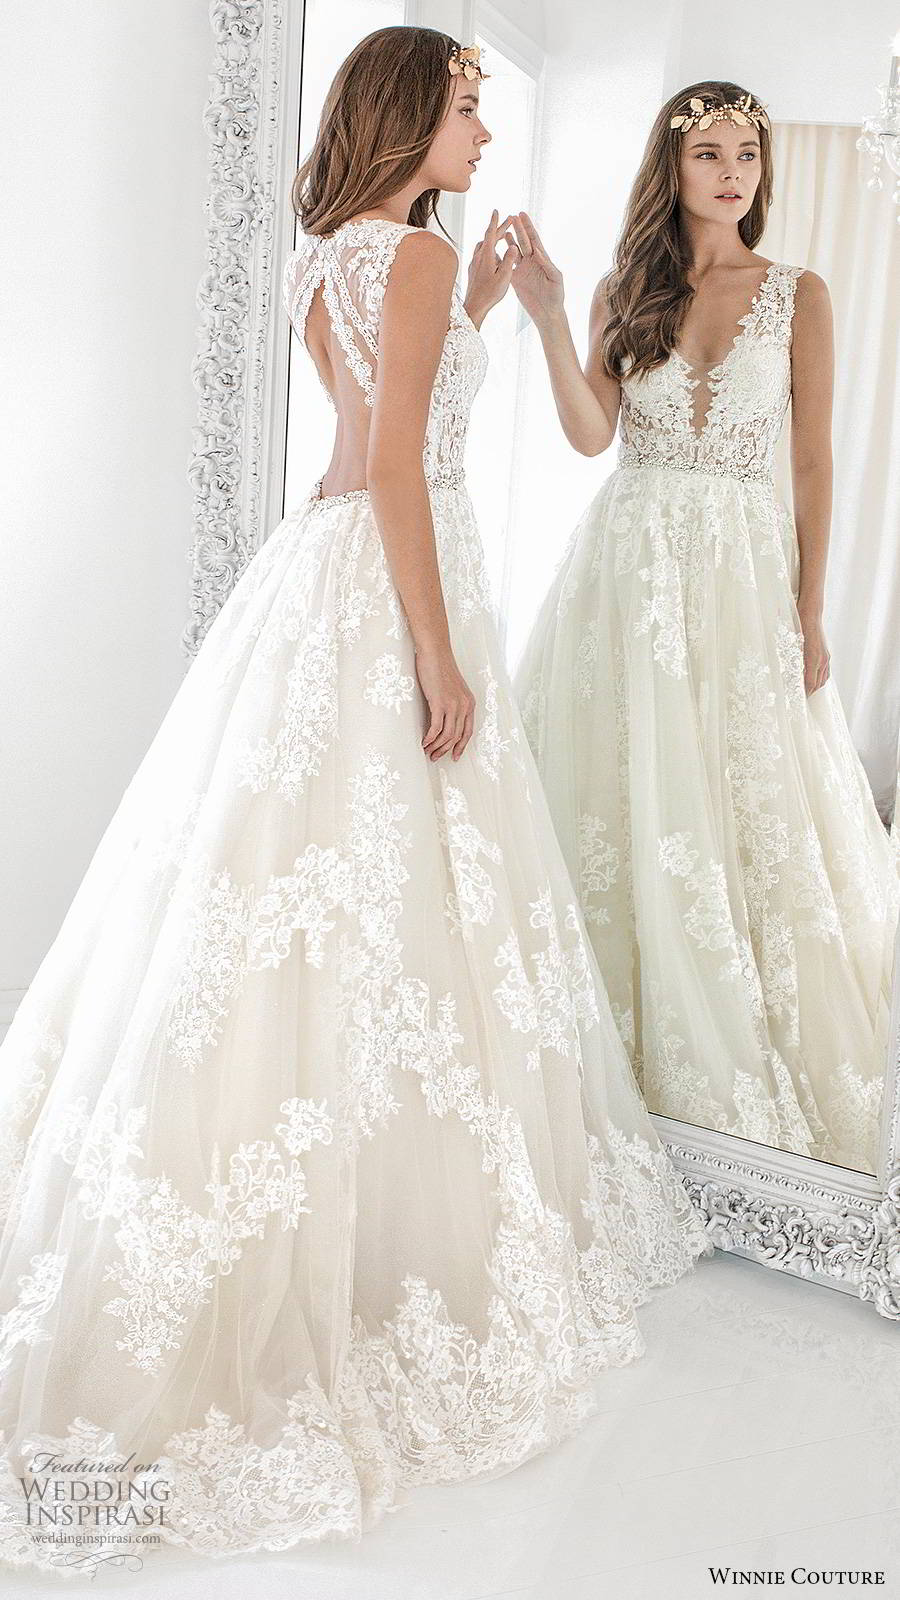 winnie couture 2019 bridal sleeveless thick straps plunging v neckline fully embellished lace romantic a line ball gown wedding dress keyhole back chapel train (5) bv